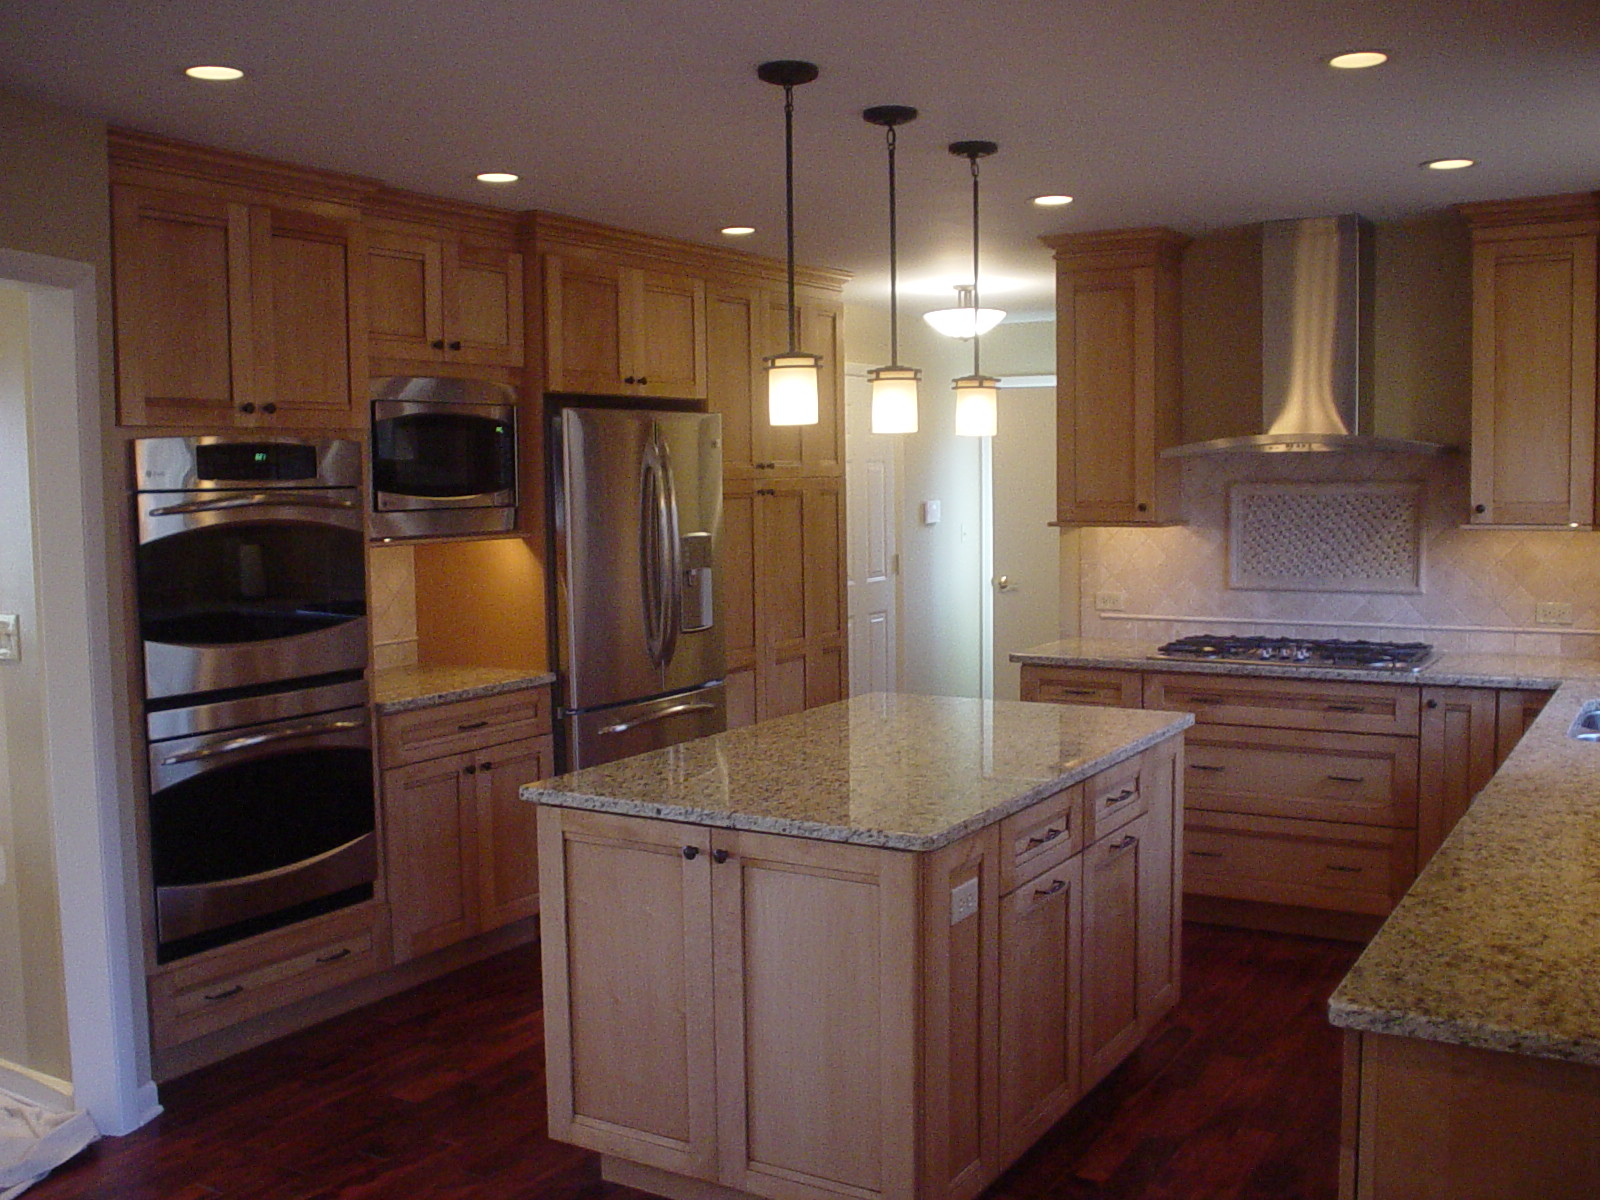 Kitchen island with overhead lighting